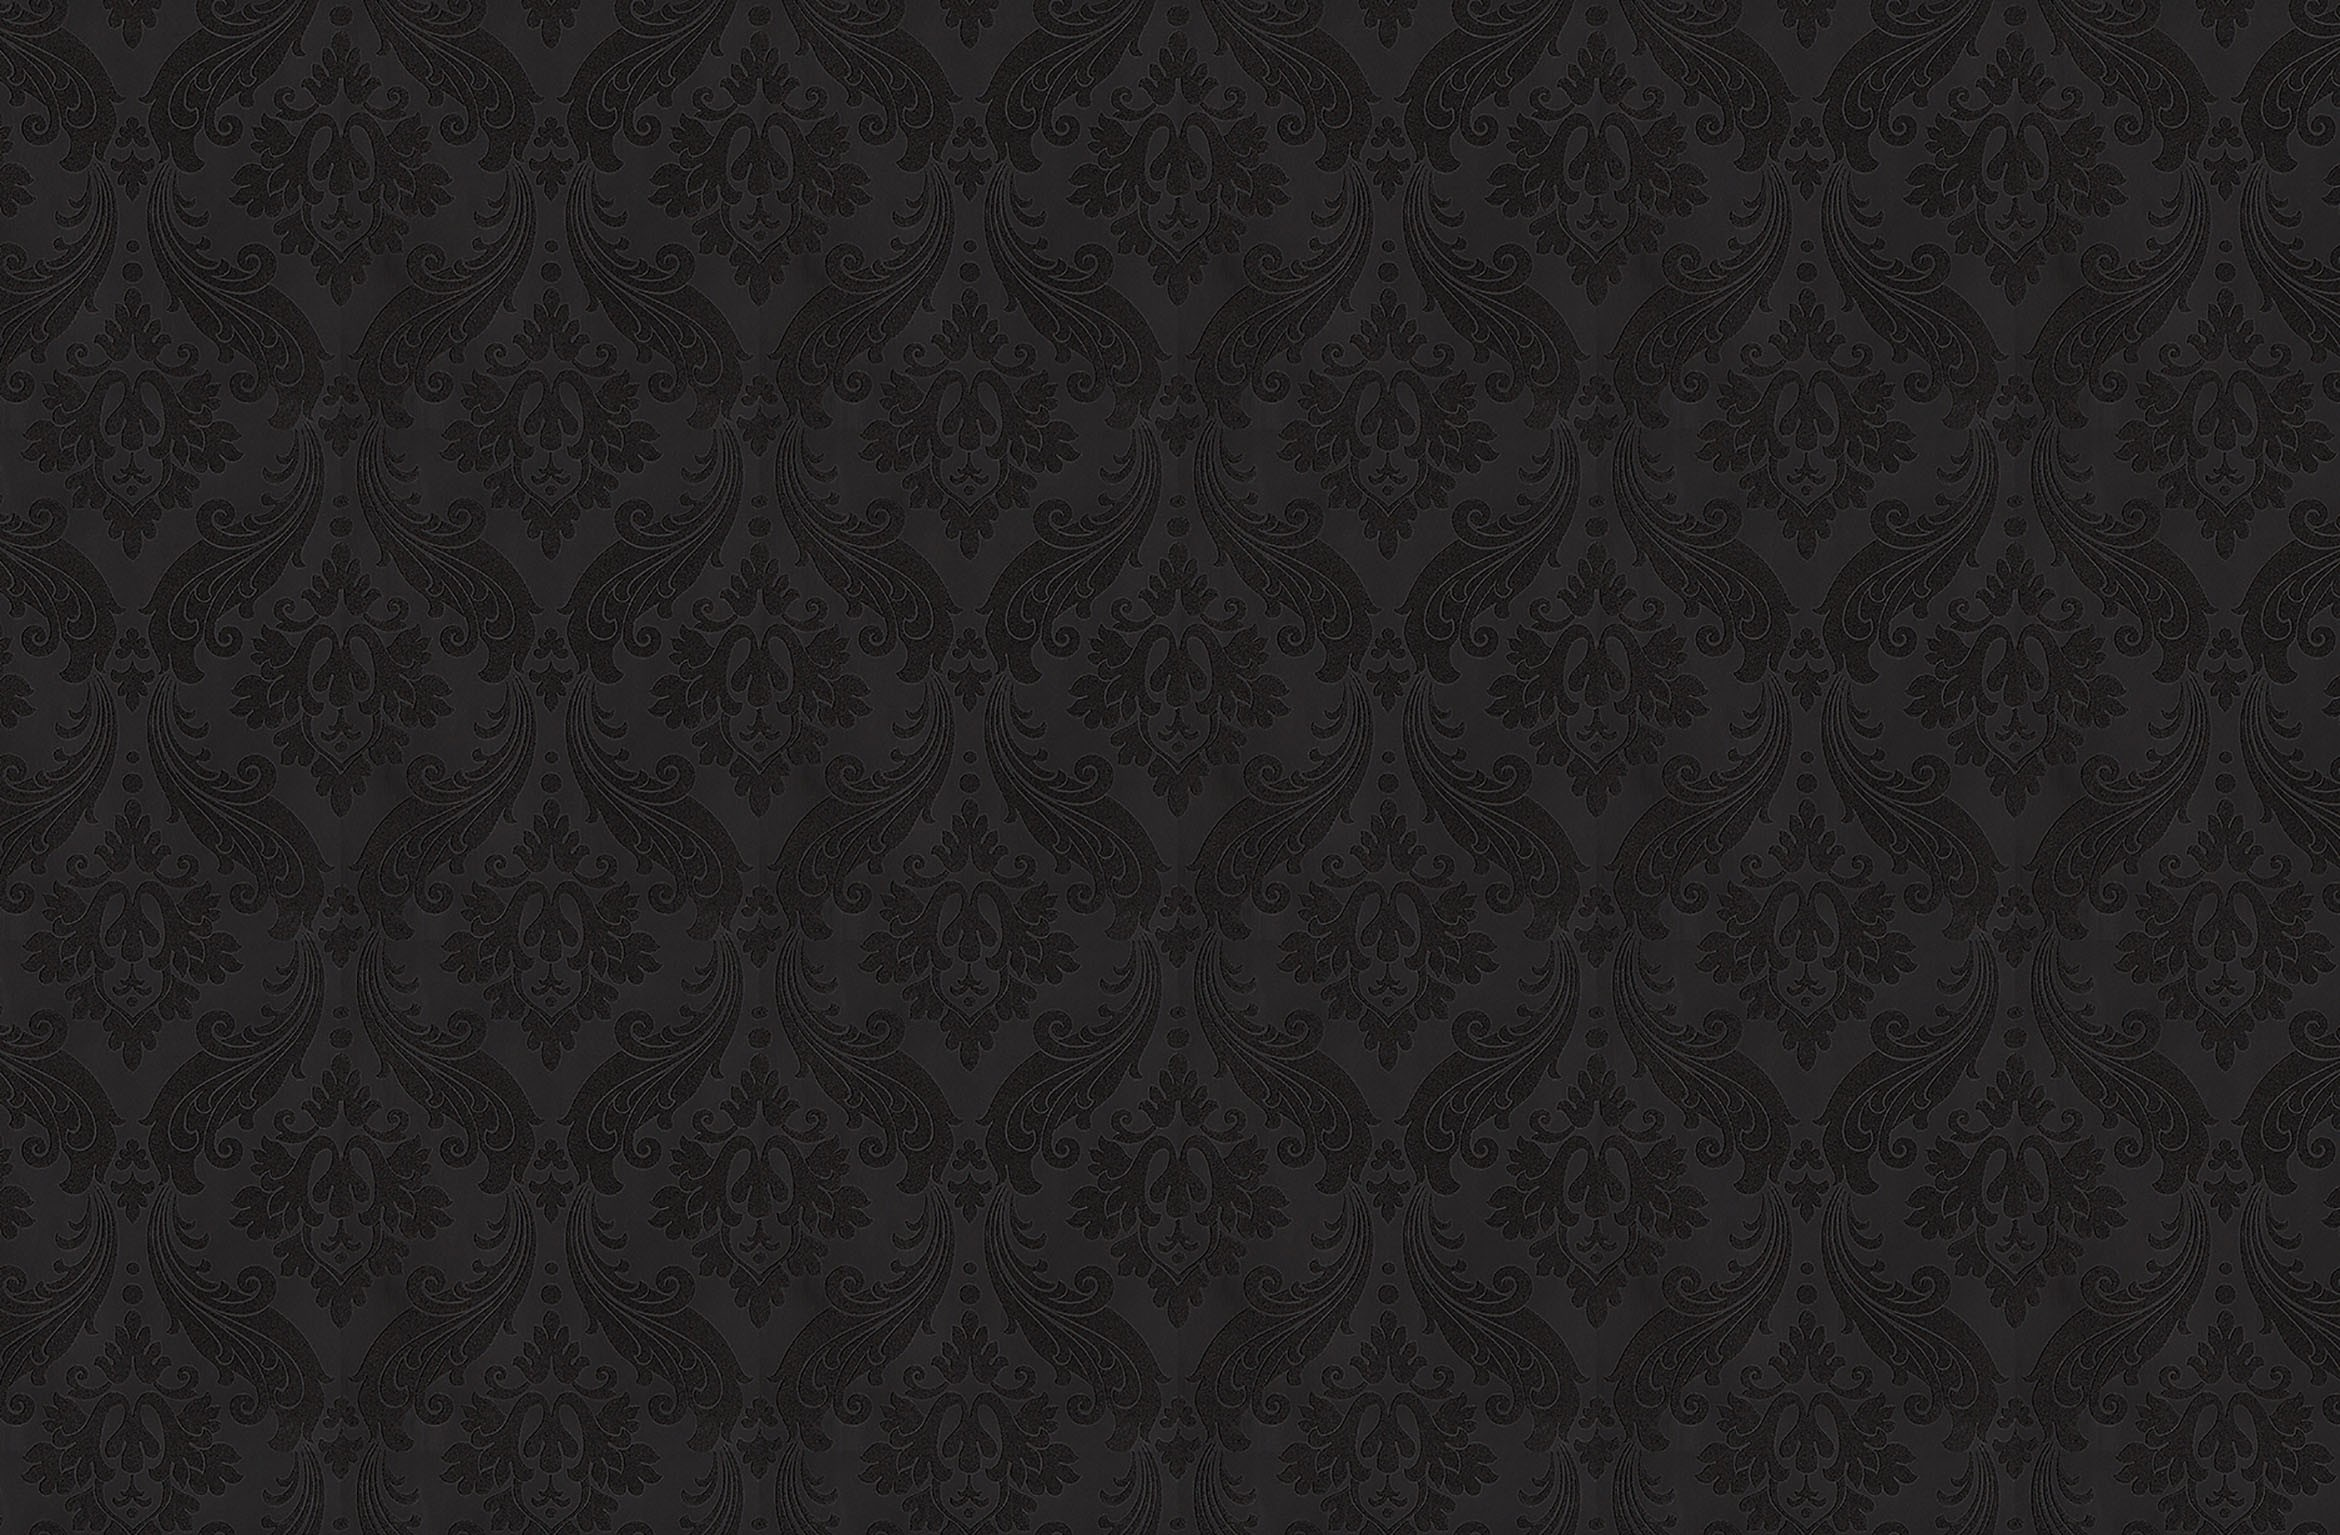 Black Velvet Wallpapers HD | PixelsTalk.Net